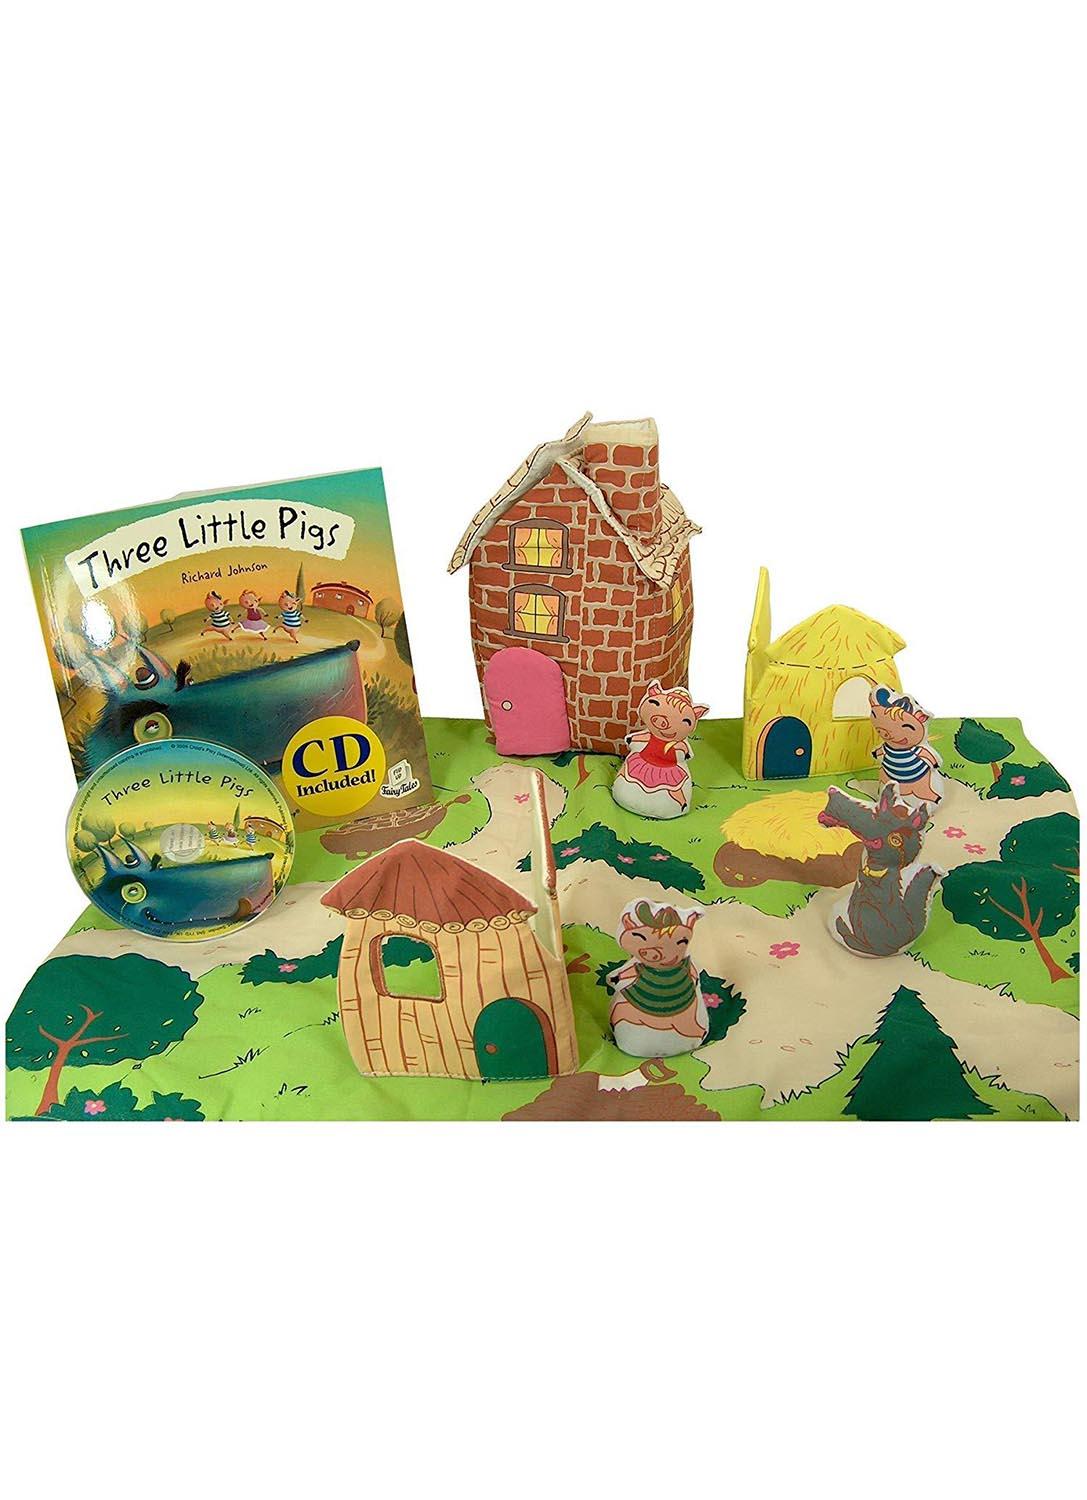 Speech therapy Three little pigs  and wolf Fairytale Story stones Montessori toy